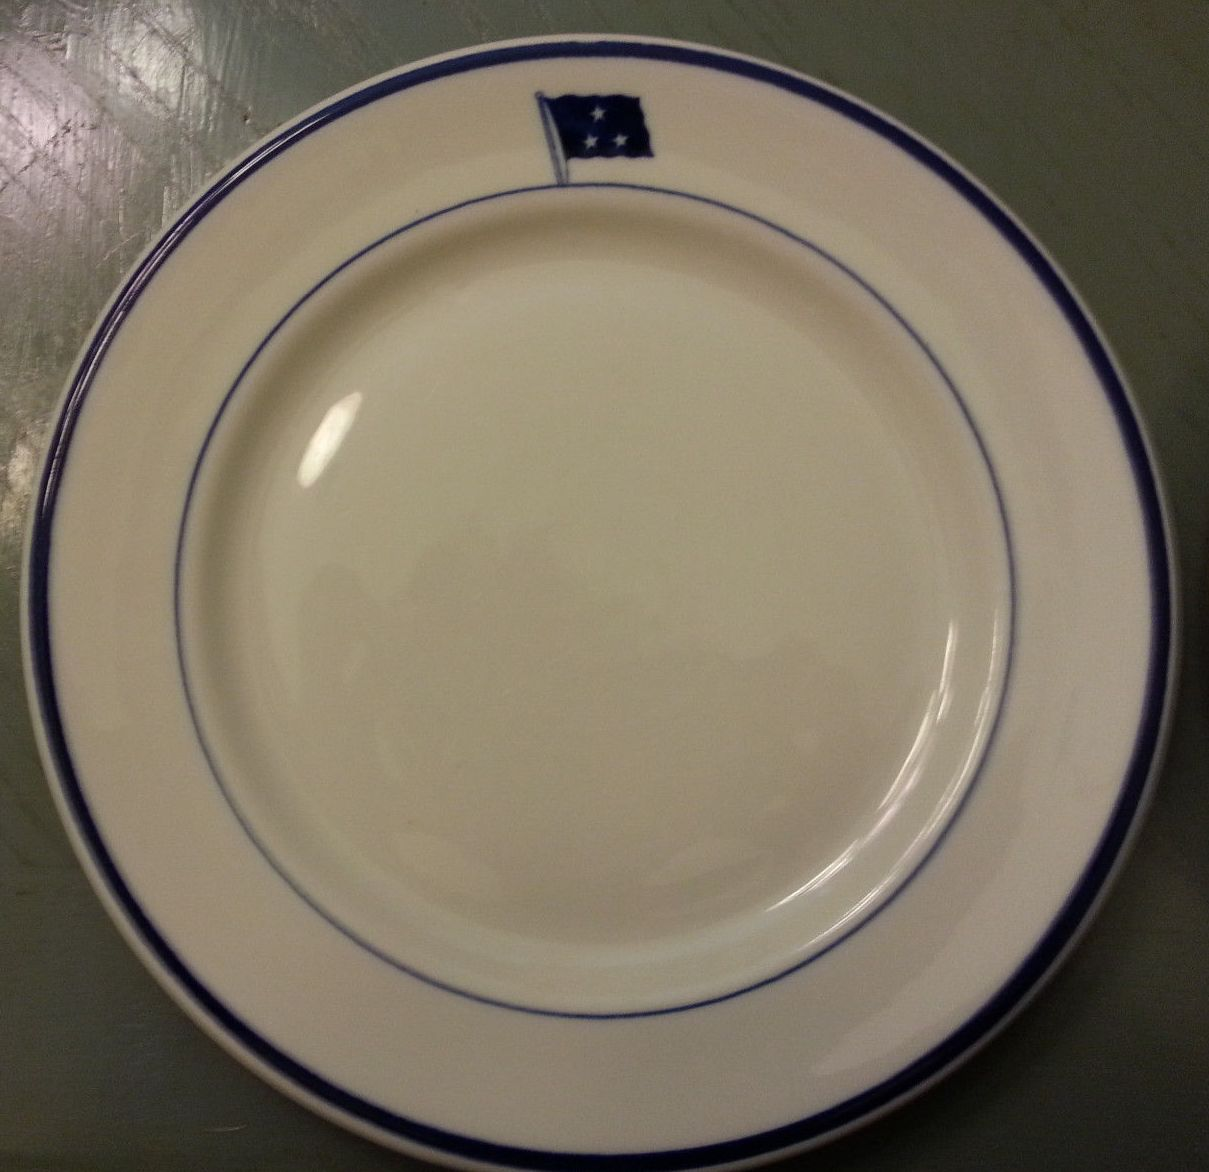 vice admiral, 3 stars, dinner plate by shenango china